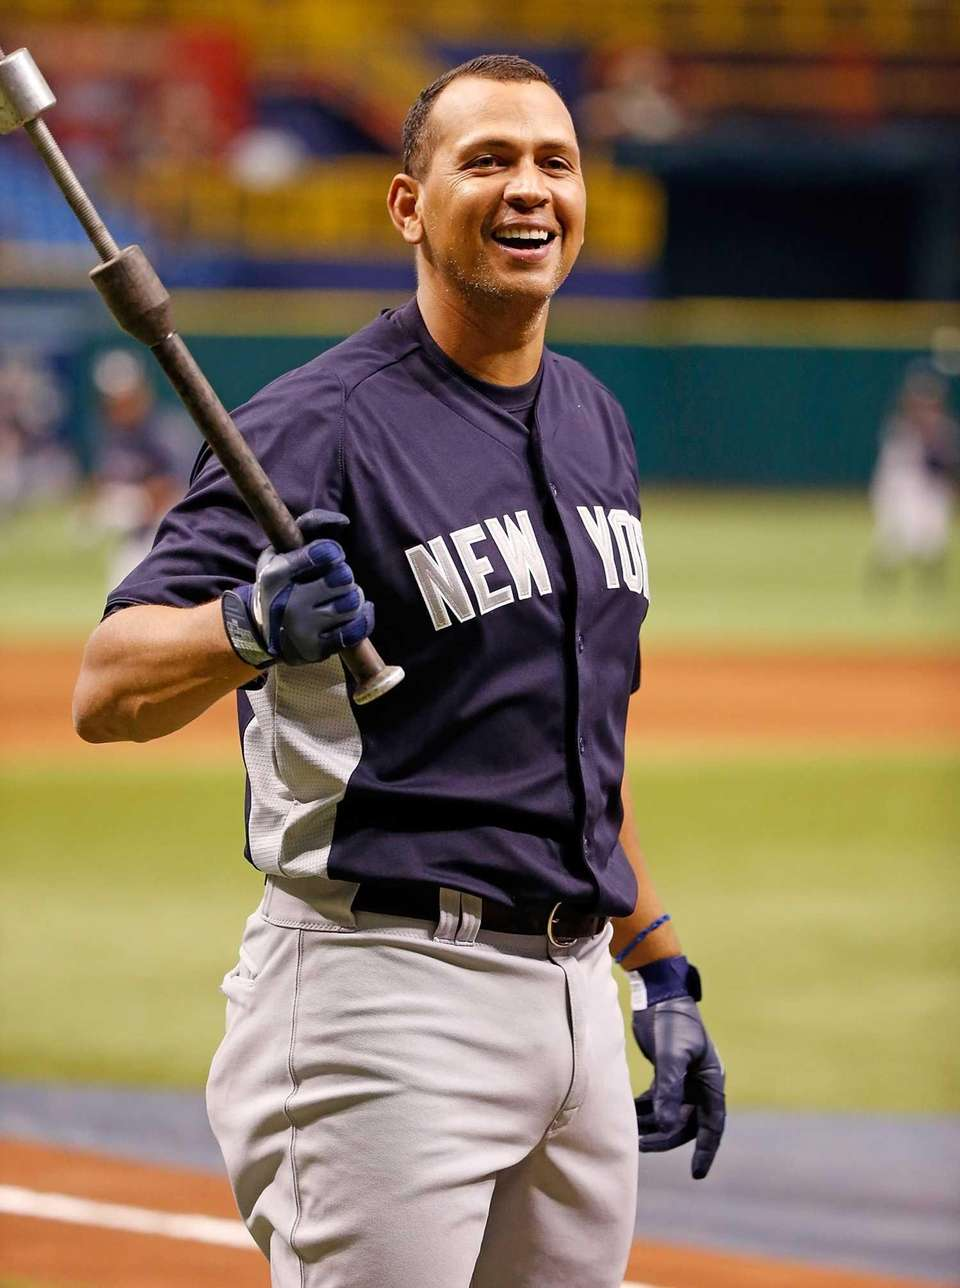 Infielder Alex Rodriguez of the Yankees smiles during